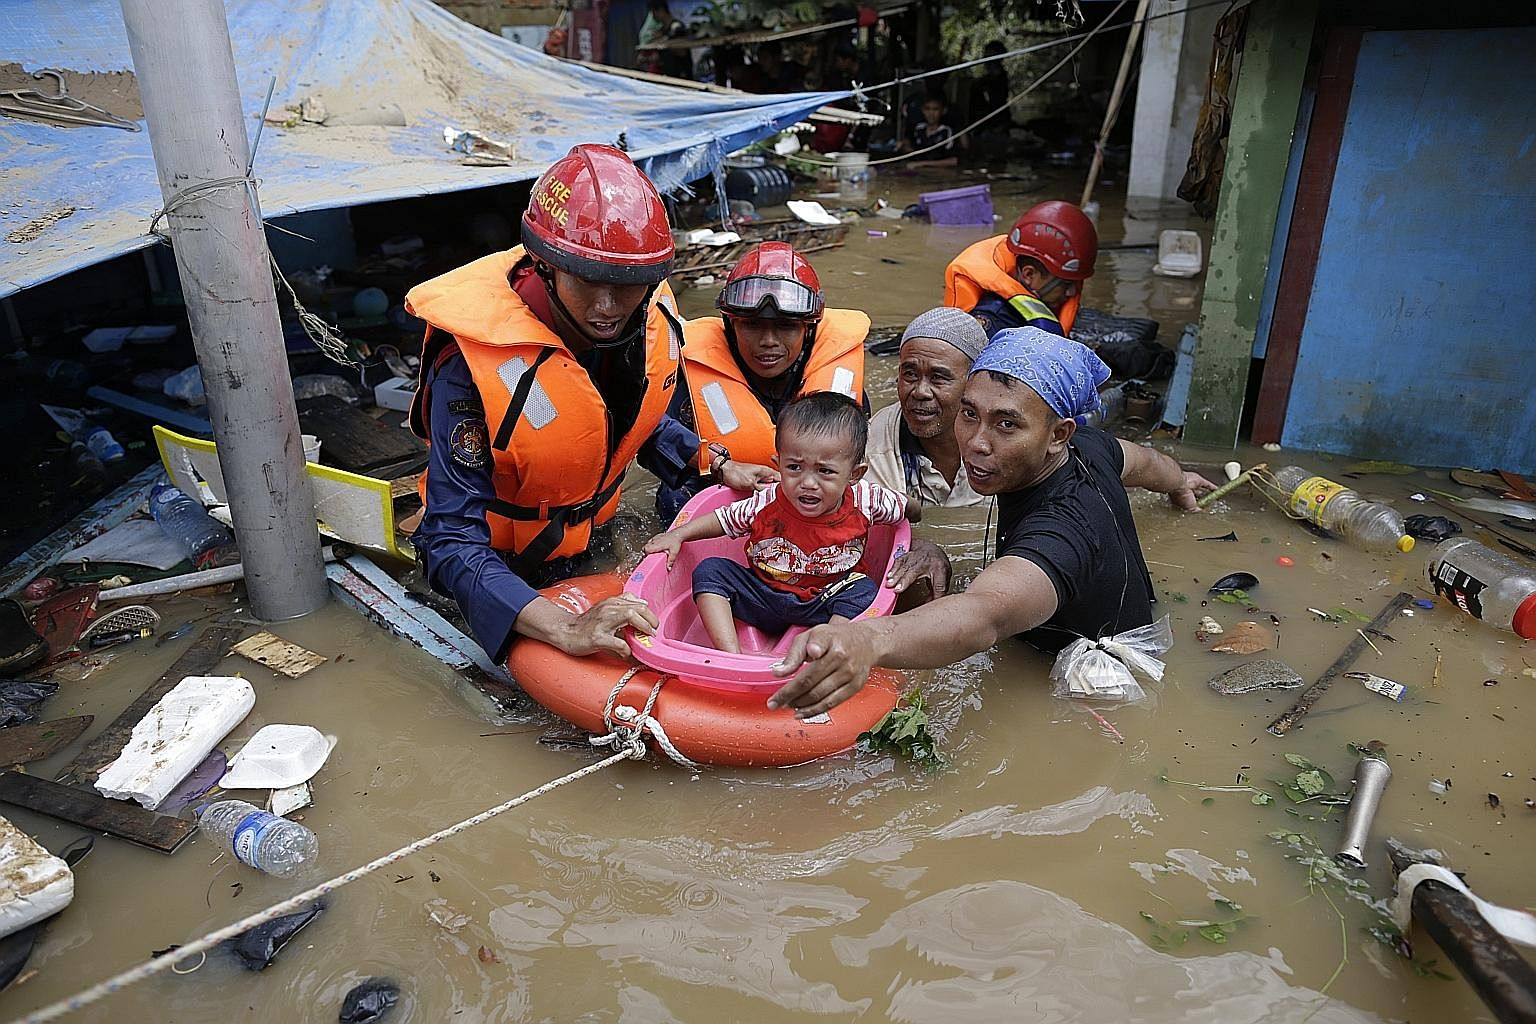 Indonesian rescuers evacuating a boy from a flooded area in Jakarta yesterday. Severe flooding and landslides caused by torrential rain over the New Year period have killed at least 26 people and left thousands more in the Indonesian capital and its